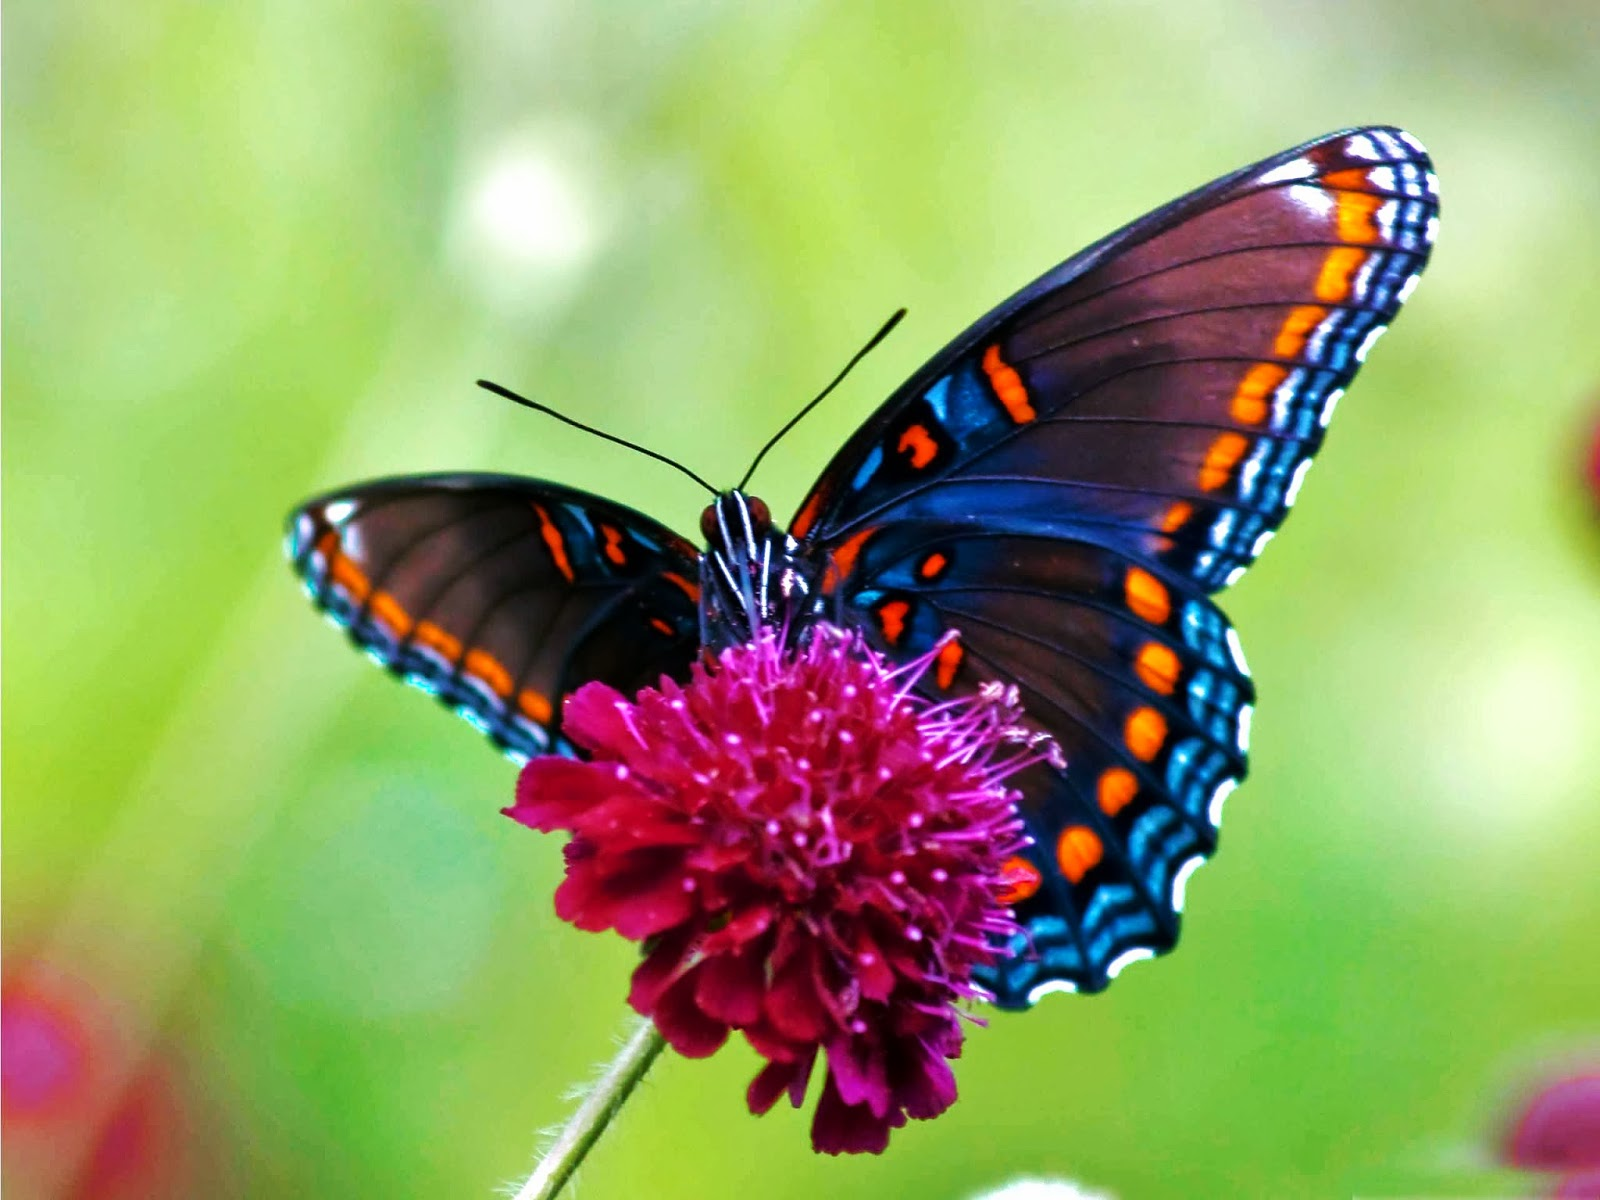 Butterfly Wallpaper 710 Images Free